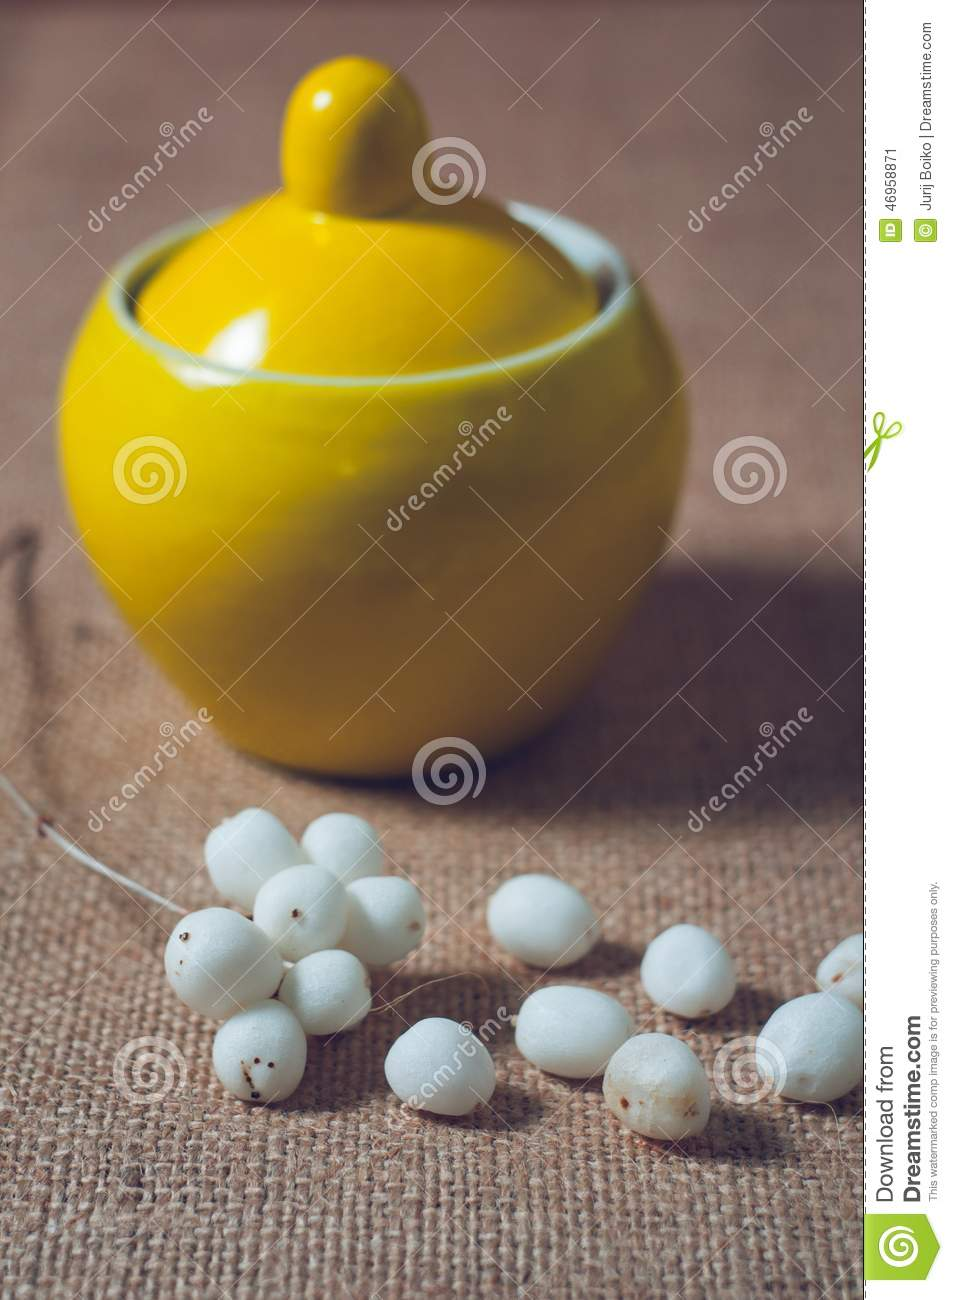 Yellow sugar bowls with lids - Yellow Sugar Bowl On A Table With White Balls